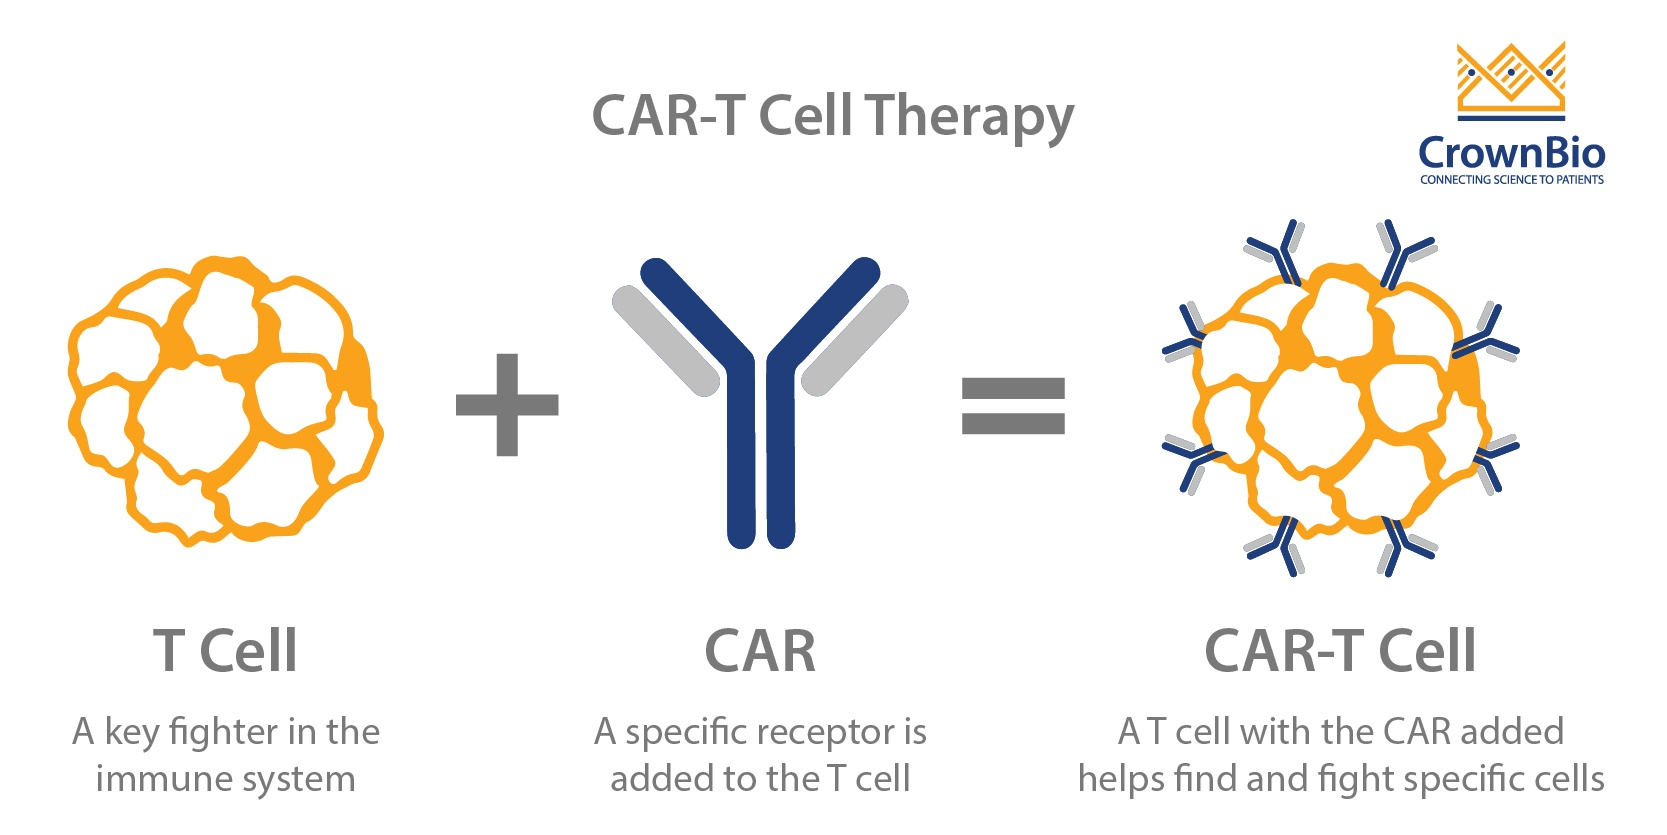 immunotherapy, immuno-oncology model, development efficacy safety study car-t cell therapy CD19